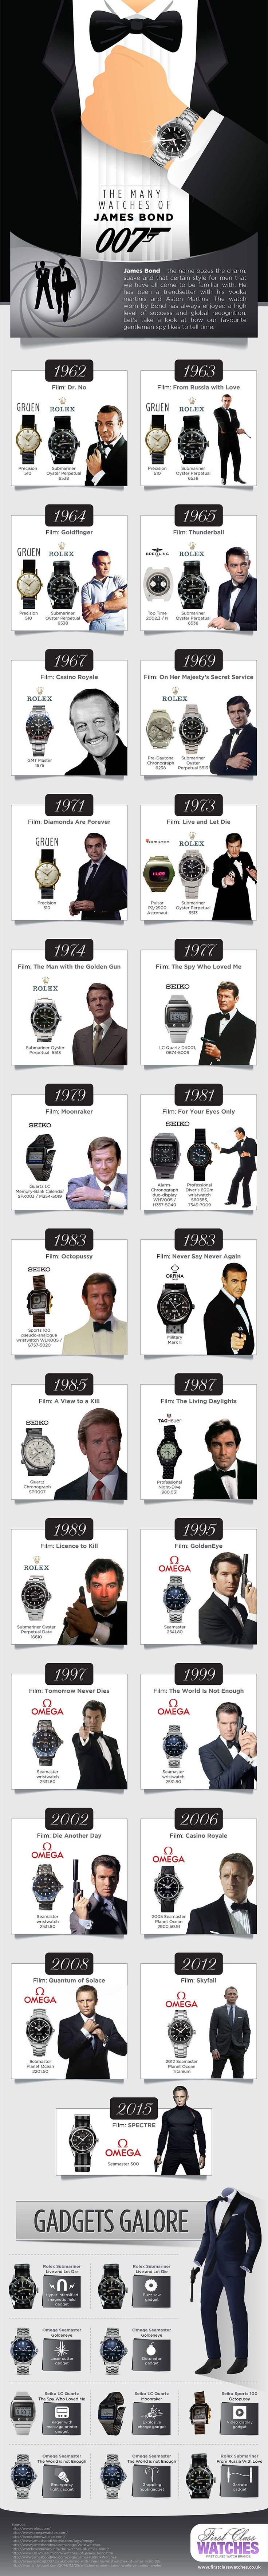 The Many Watches of James Bond – Spectre Infographic